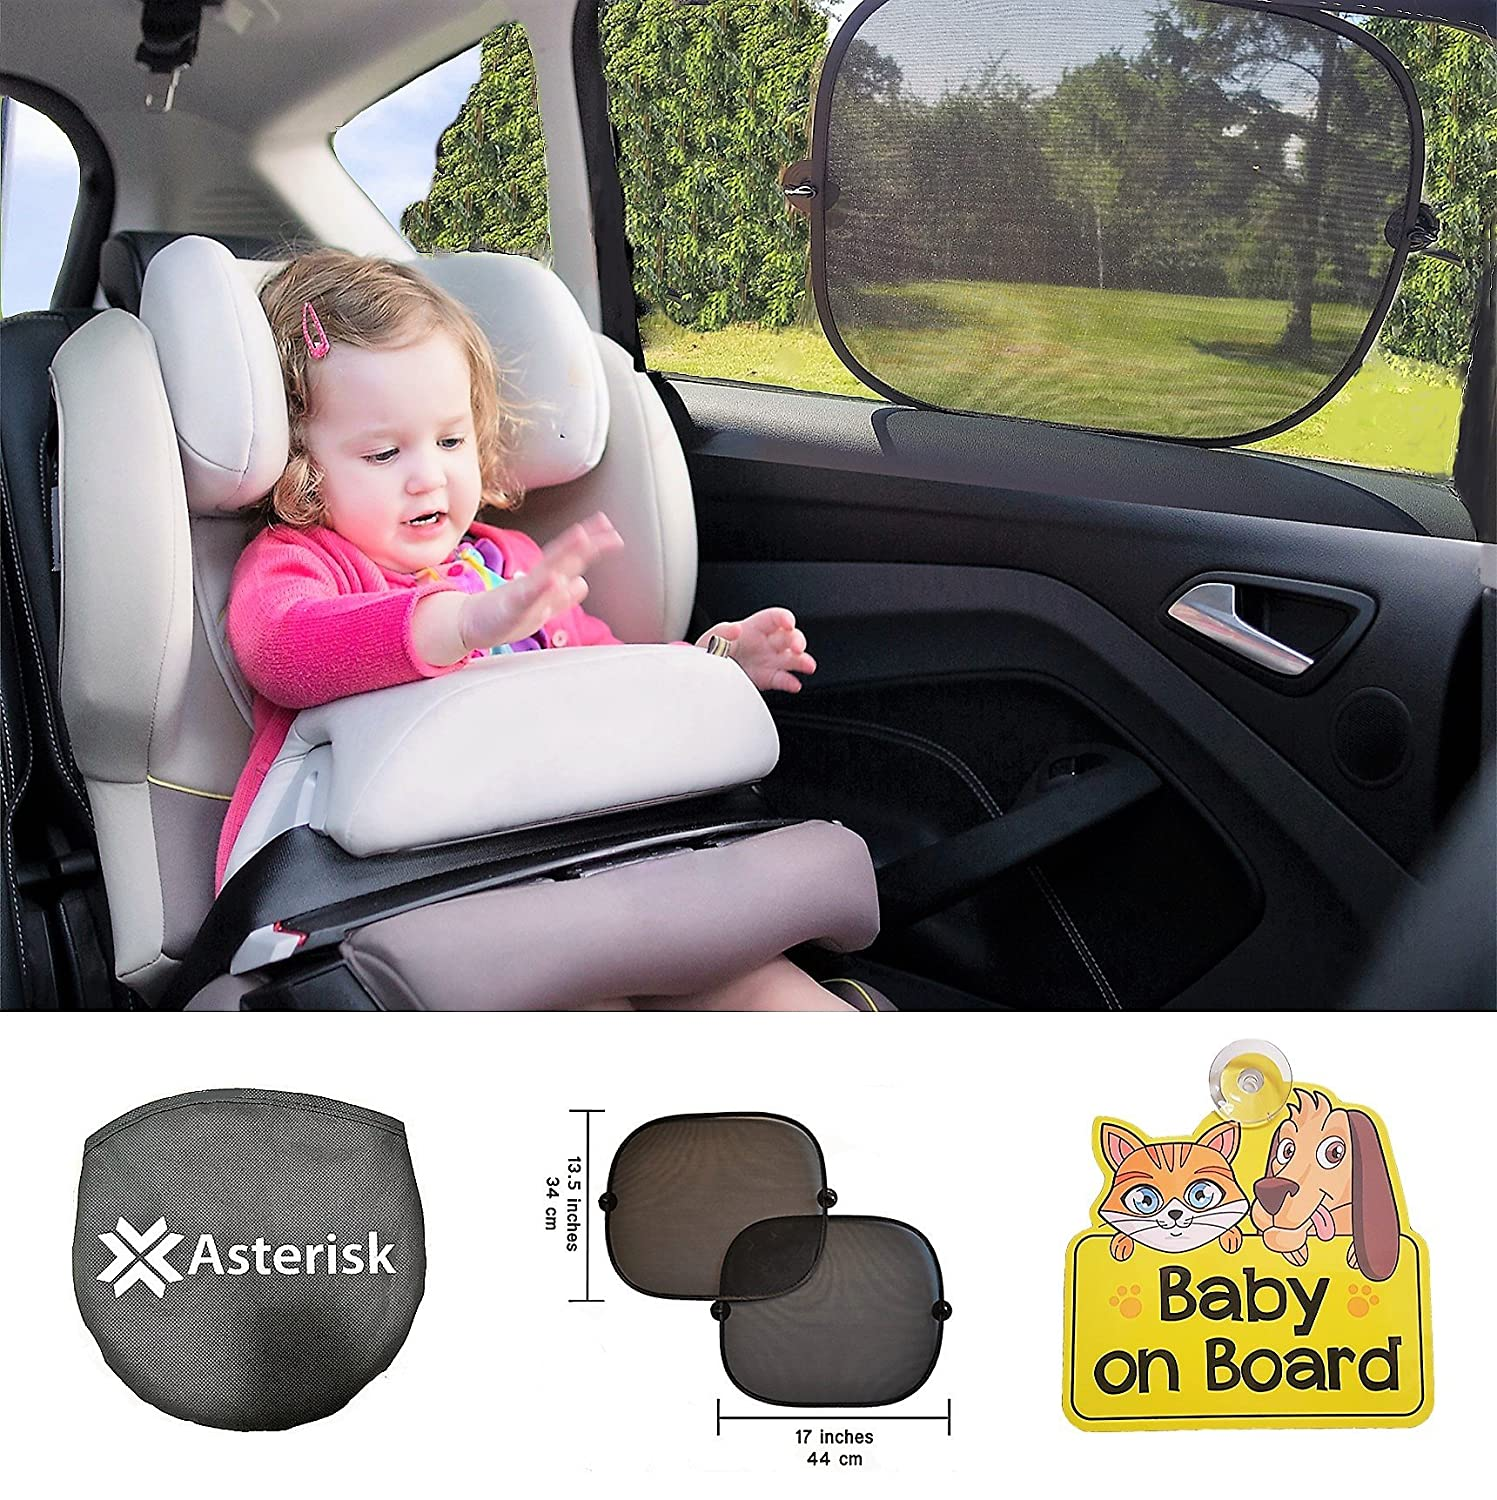 Car Sun Shades for babies and children - Bonus BABY ON BOARD car sign - Black Car Sunshade / Protector for side and rear window - 2 pack - Blocks harmful UV ...